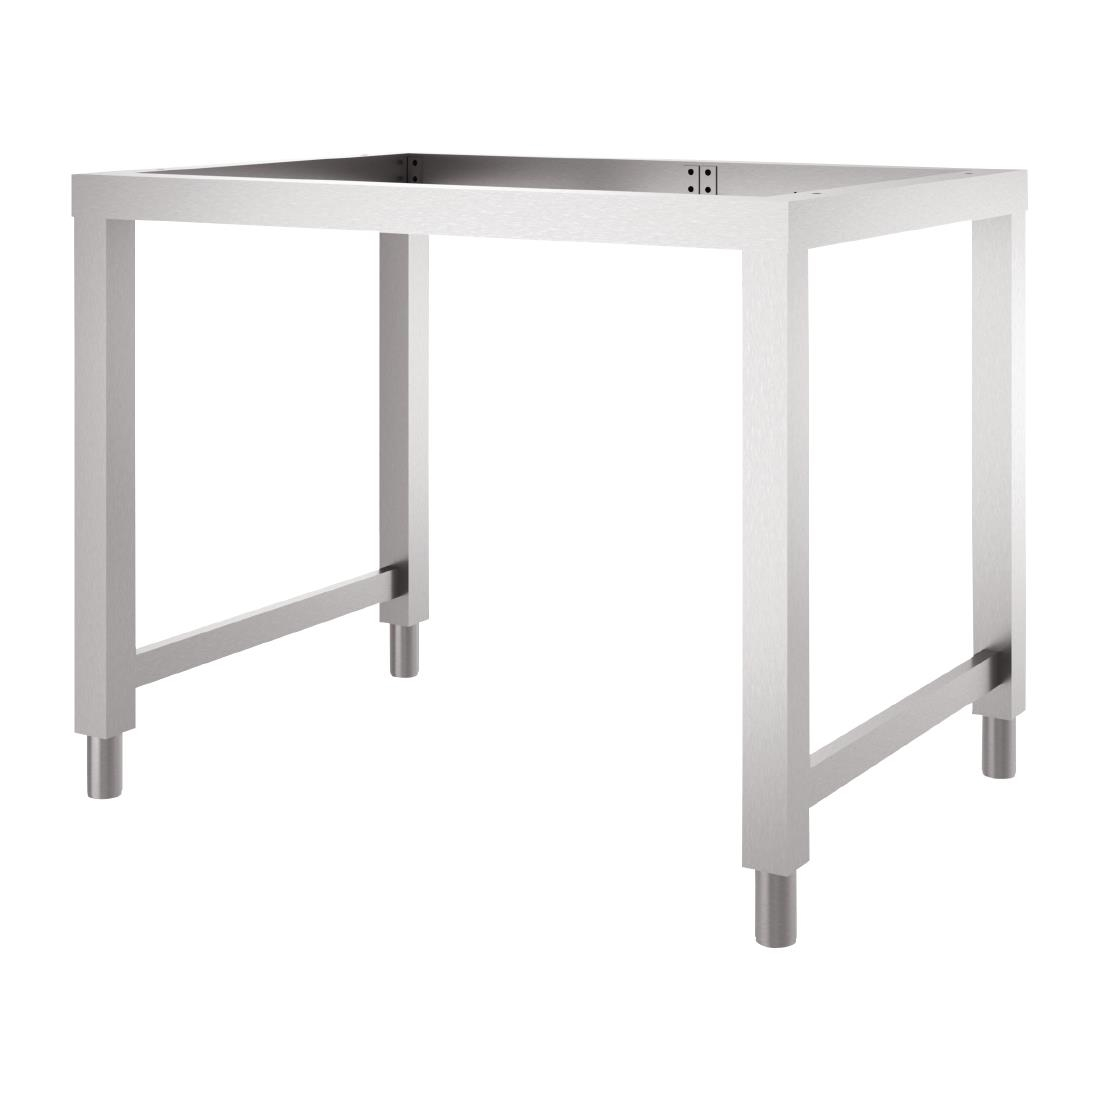 Image of Lainox Open Stainless Steel Stand NSR101